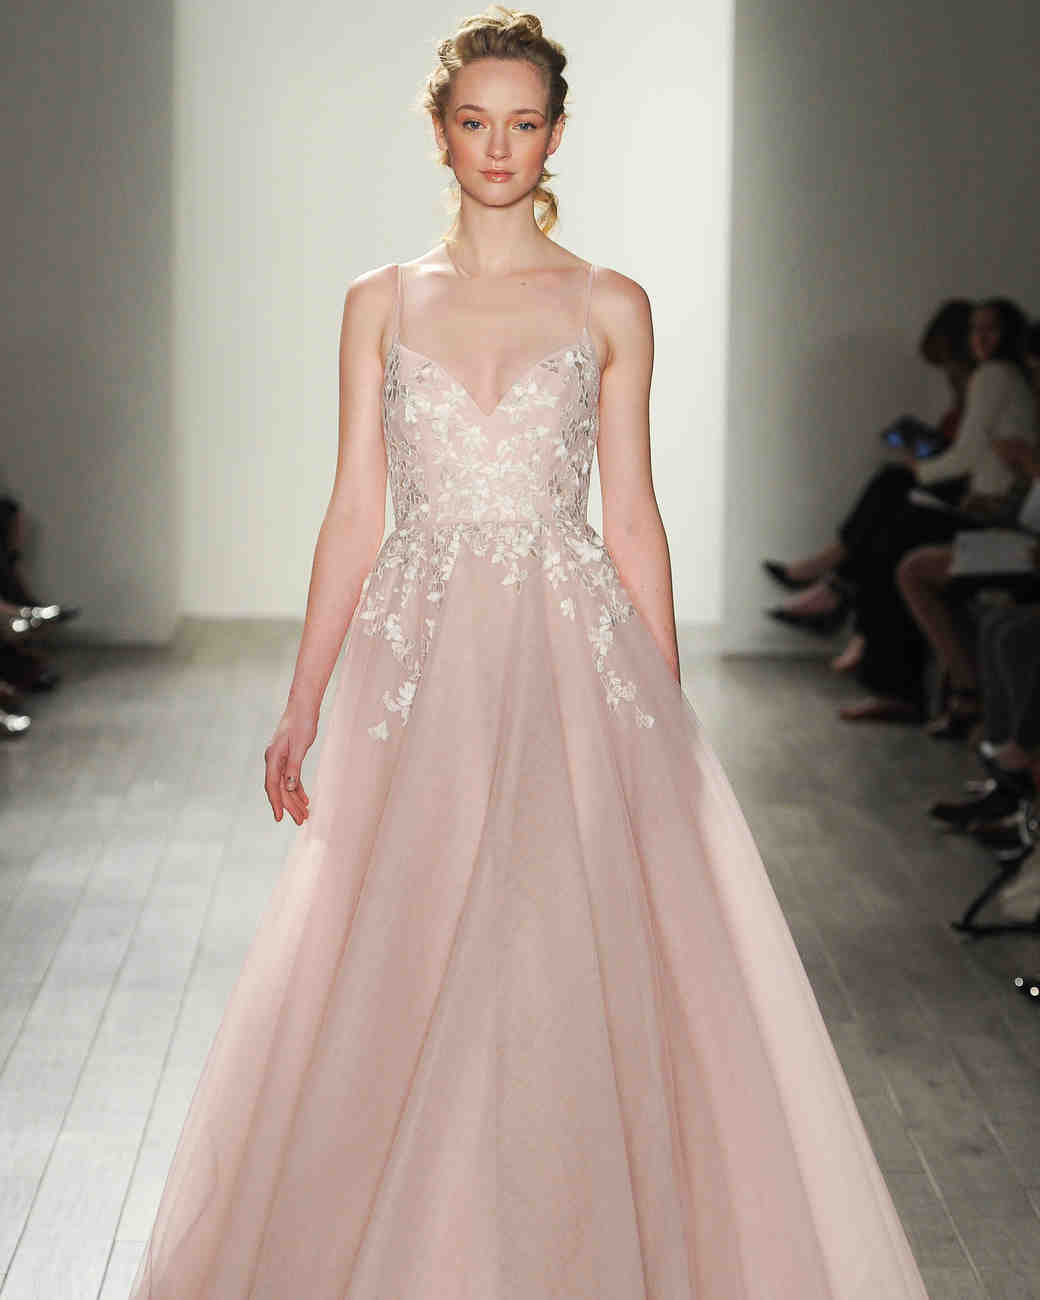 colored wedding dresses ombre wedding dress Colorful Wedding Dresses That Make a Statement Down the Aisle Martha Stewart Weddings